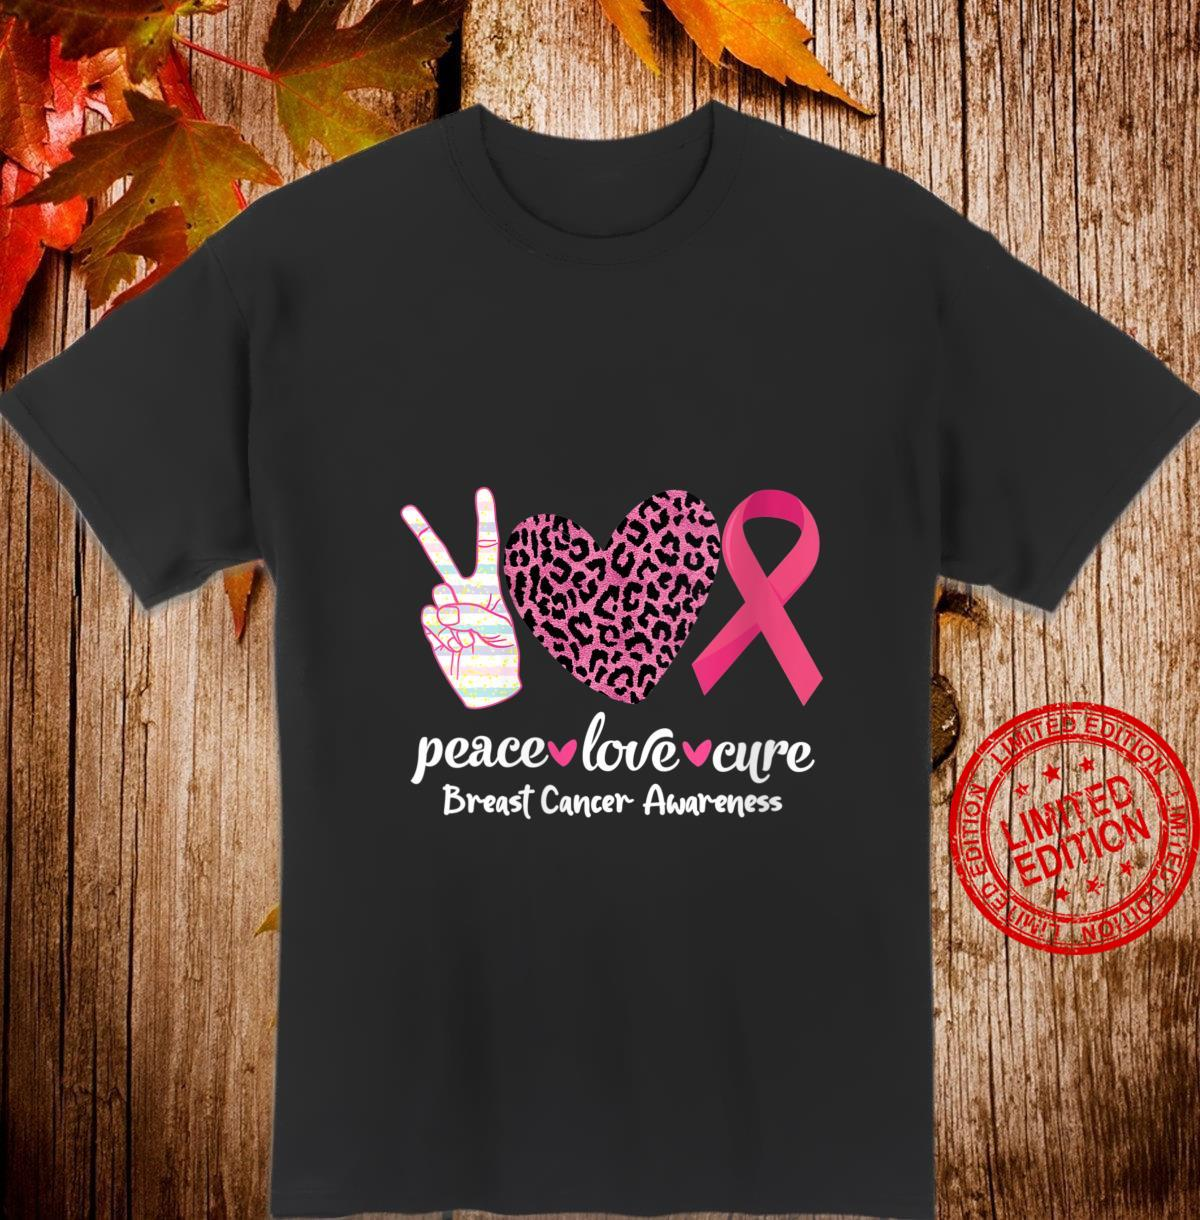 Womens Peace Love Cure Pink Ribbon Breast Cancer Awareness Shirt